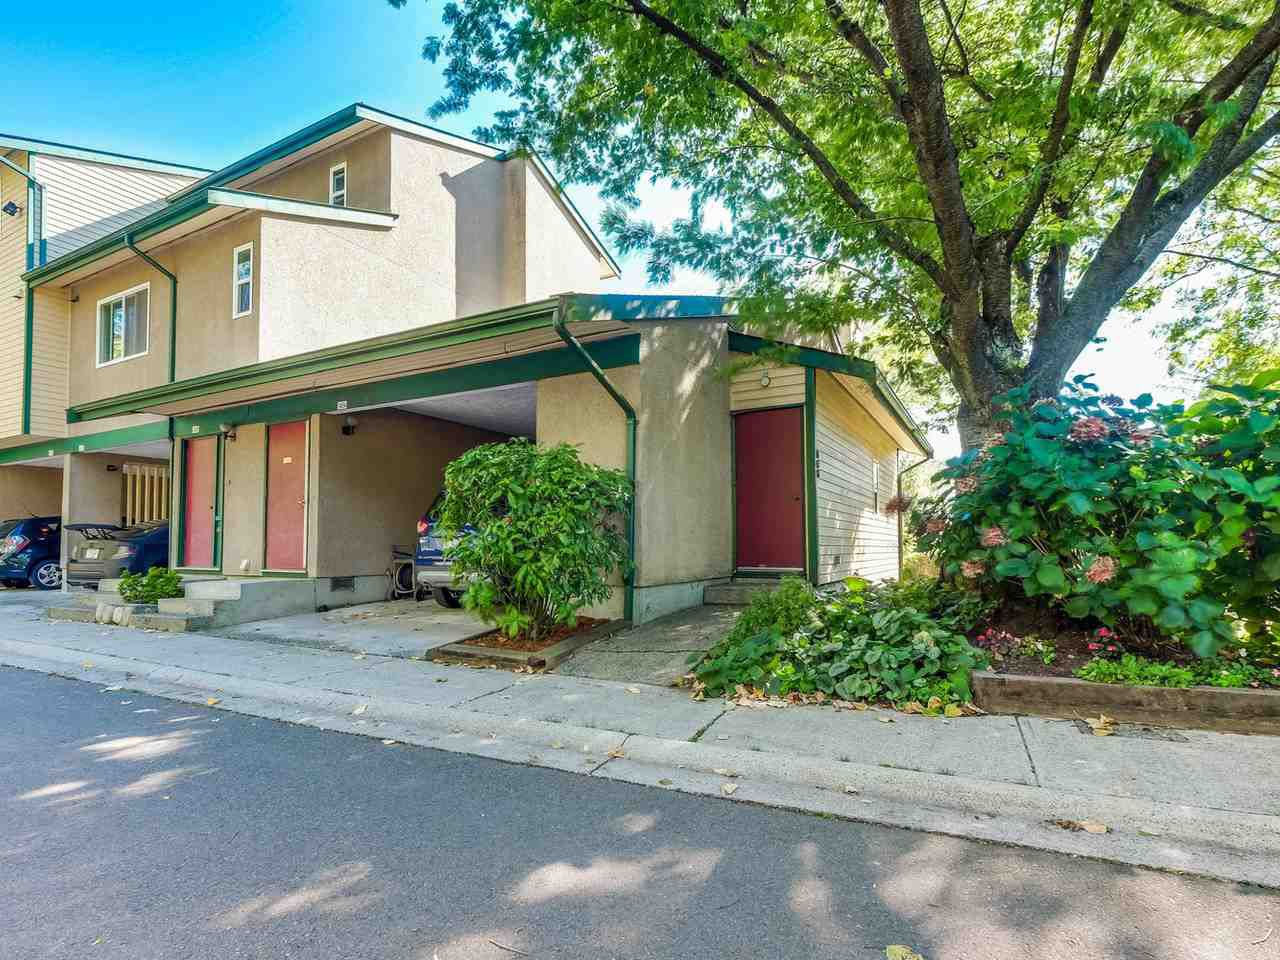 Main Photo: 3454 COPELAND AVENUE in Vancouver: Champlain Heights Townhouse for sale (Vancouver East)  : MLS®# R2145145